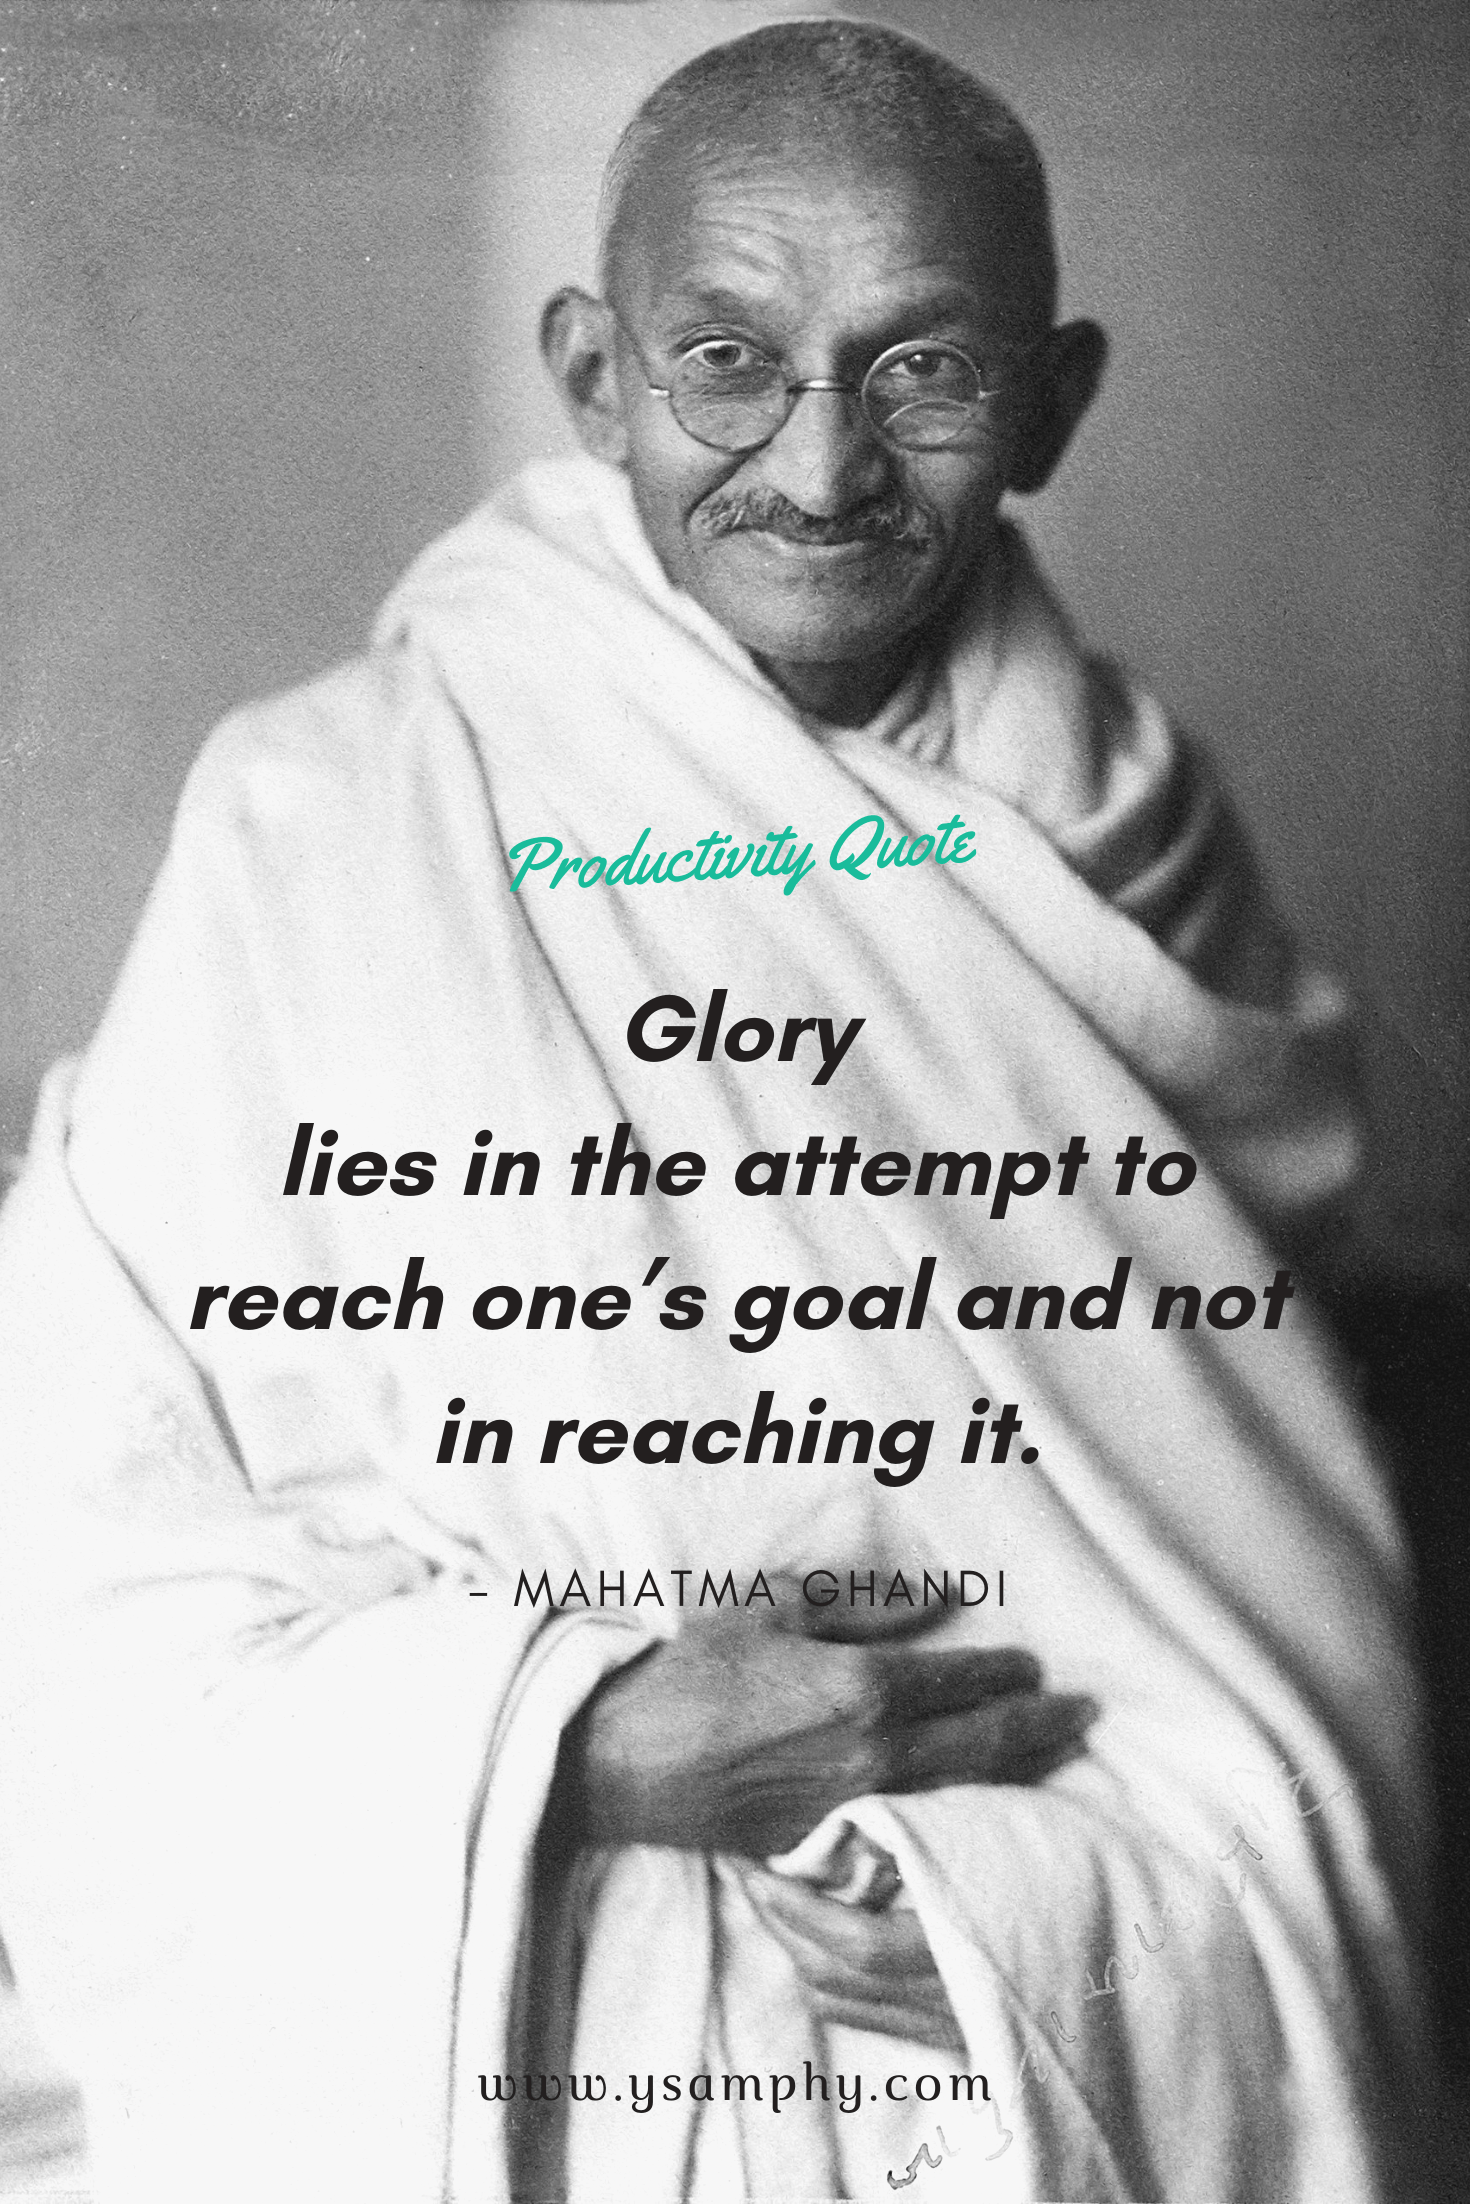 'Glory lies in the attempt to reach one's goal and not in reaching it' ~Mahatma Ghandi